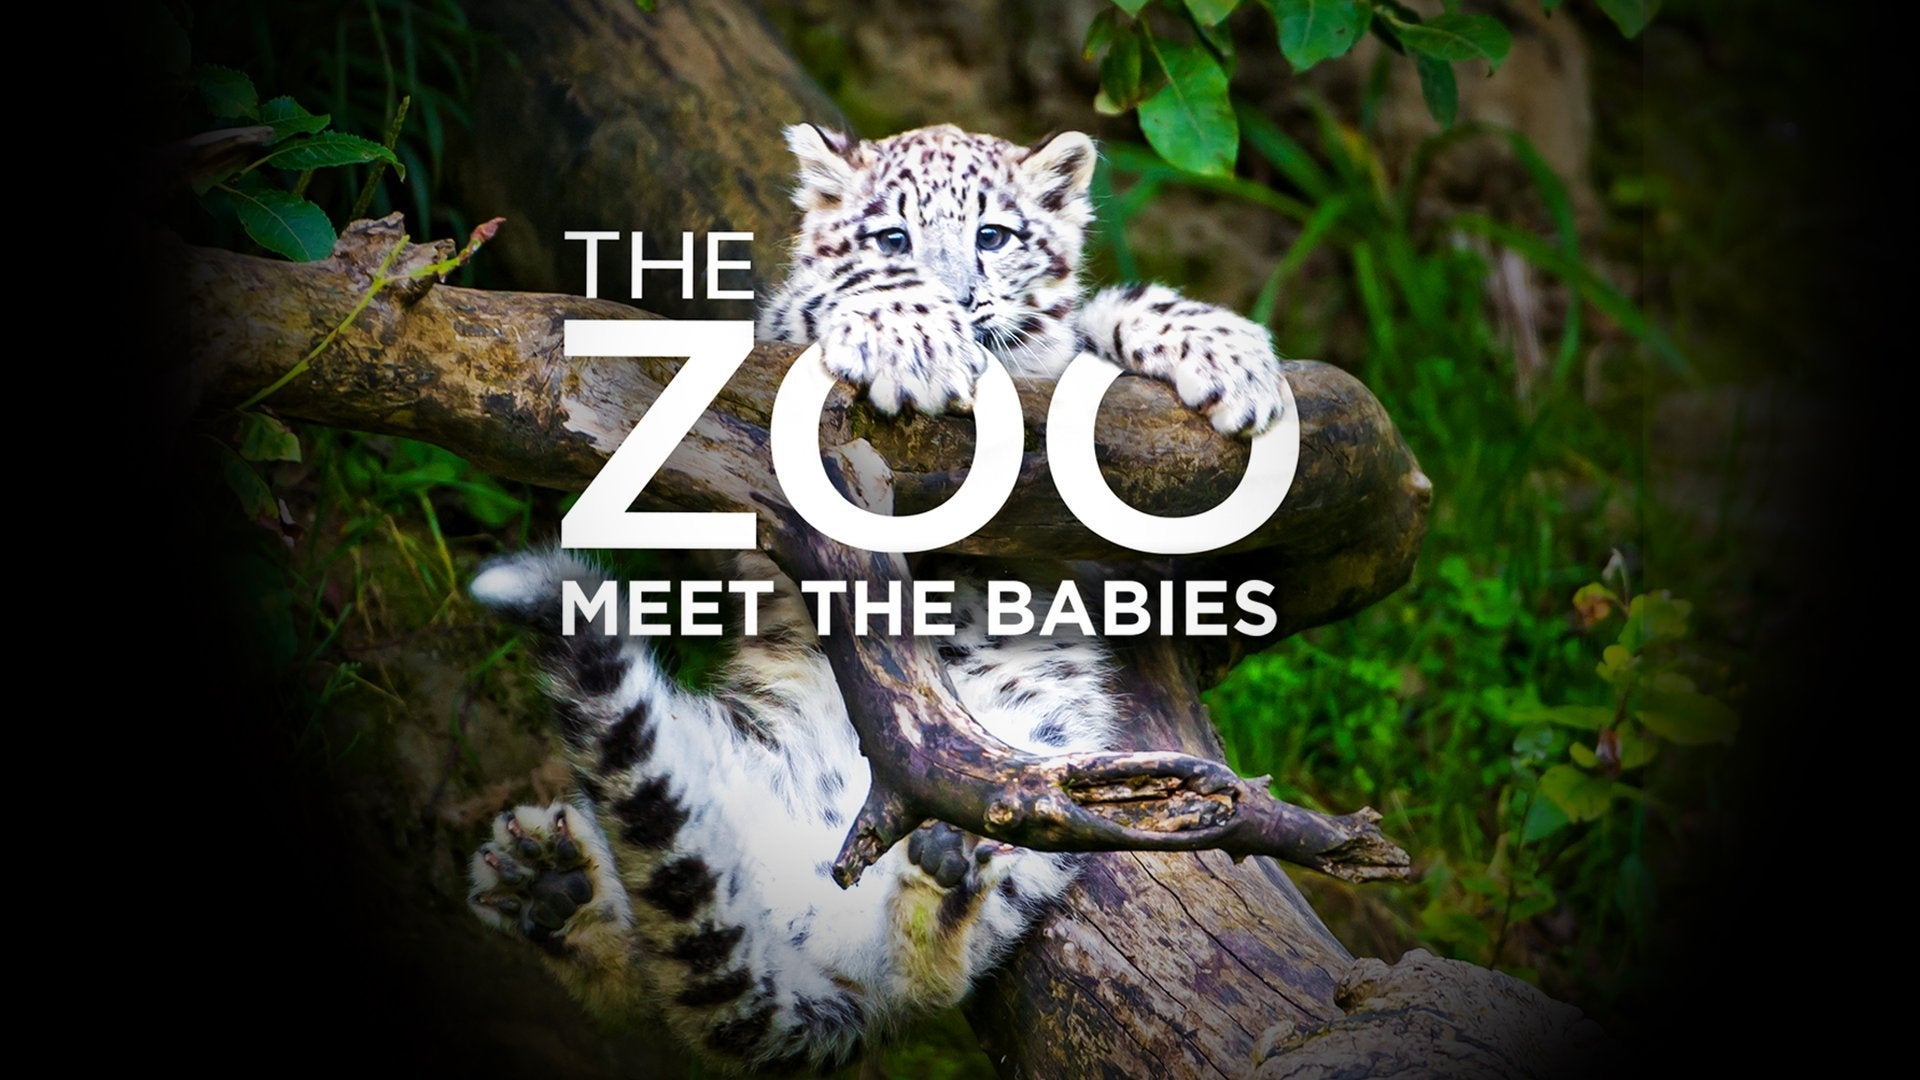 The Zoo: Meet the Babies